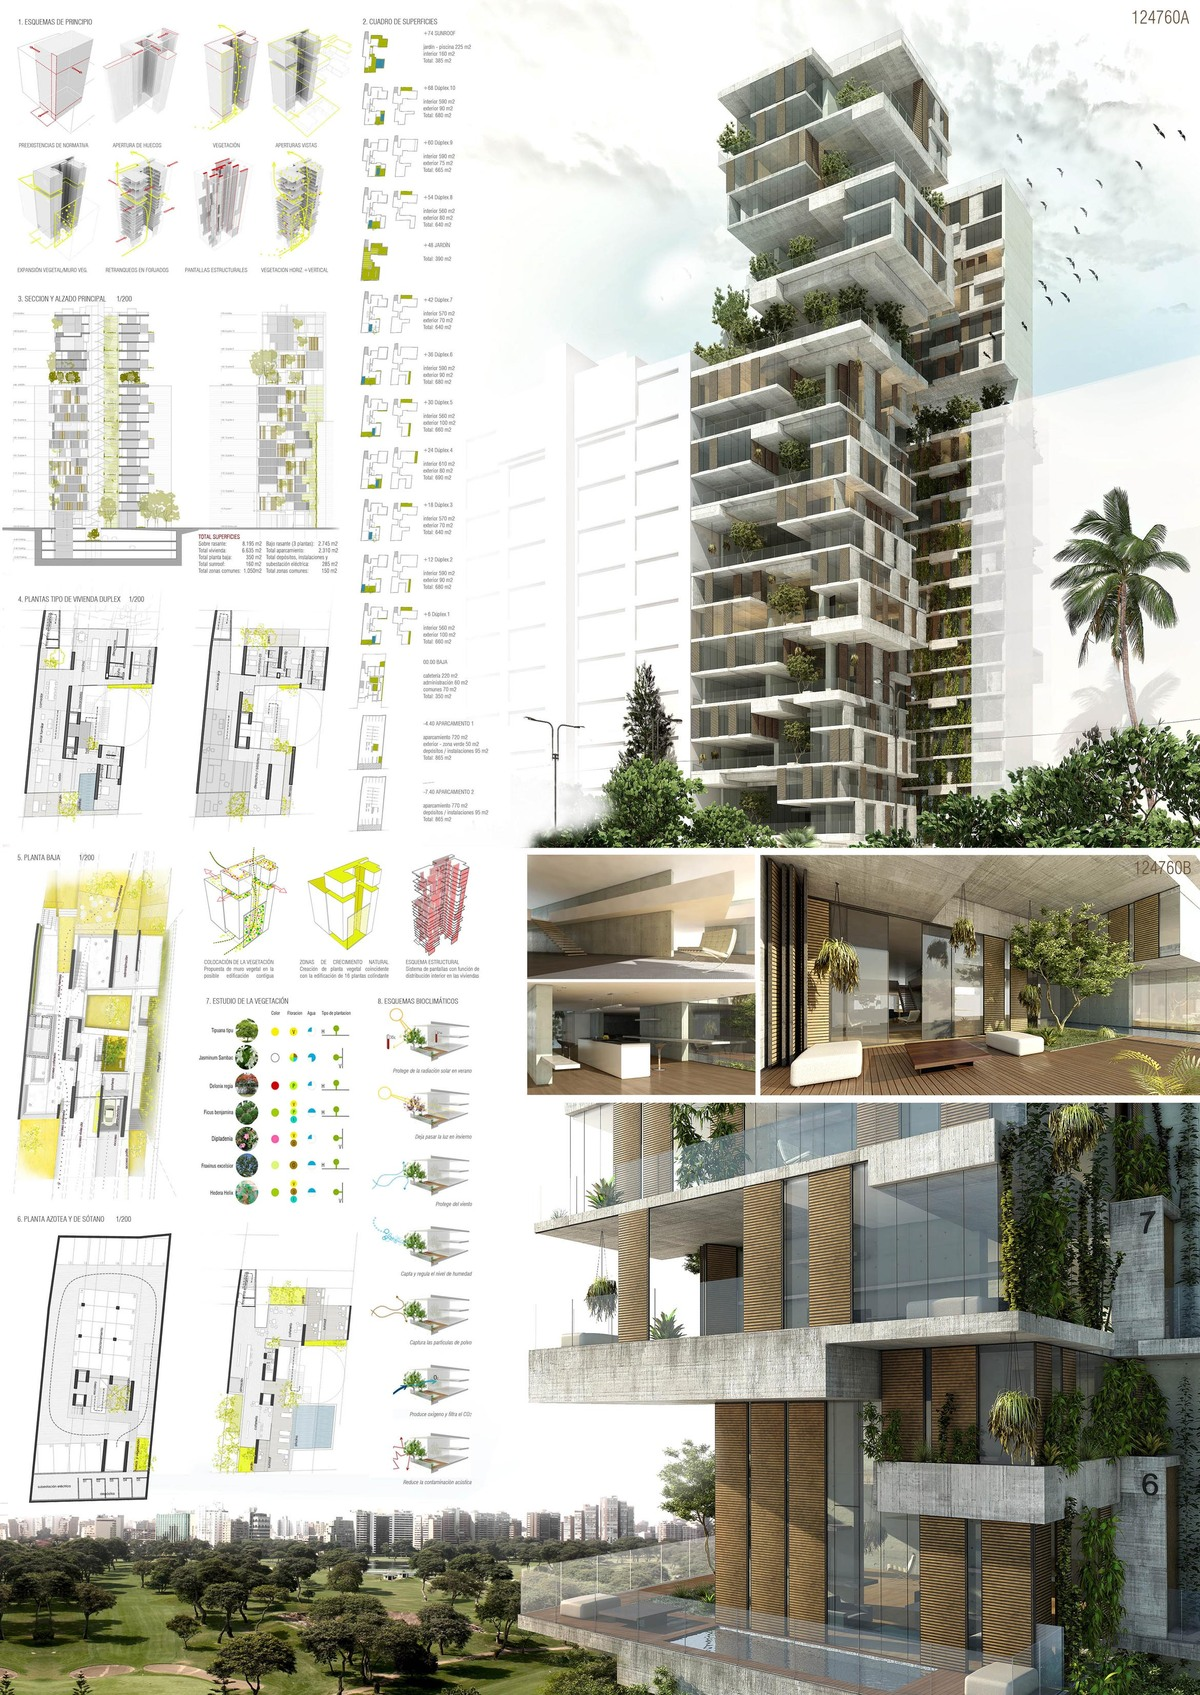 Skycondos competition in lima per honourable mention for Plan de arquitectura